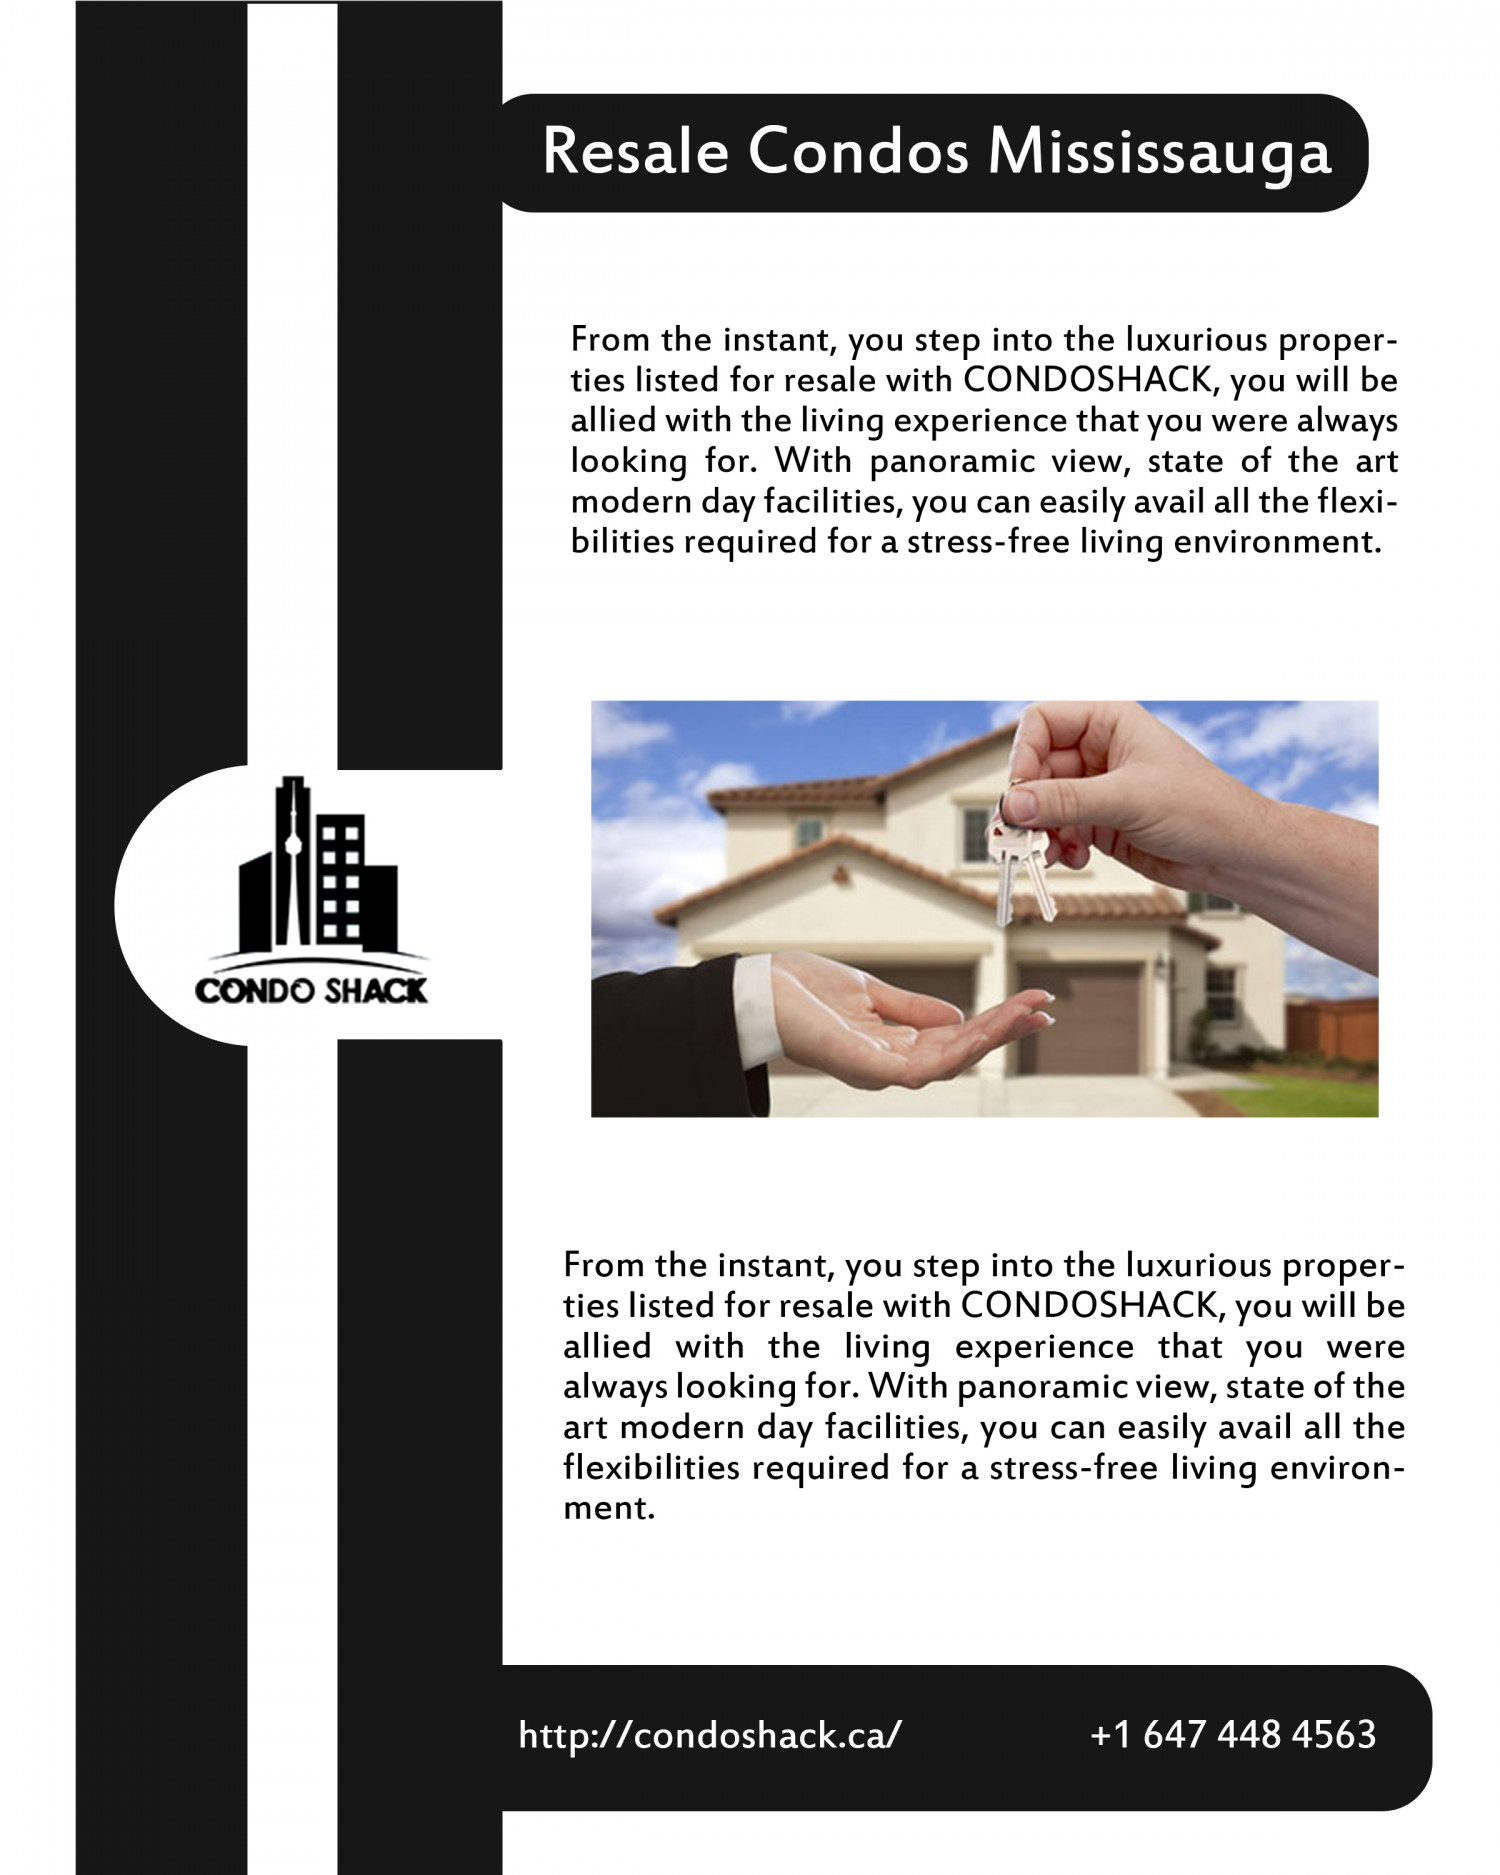 Resale Condos/Properties Mississauga Infographic